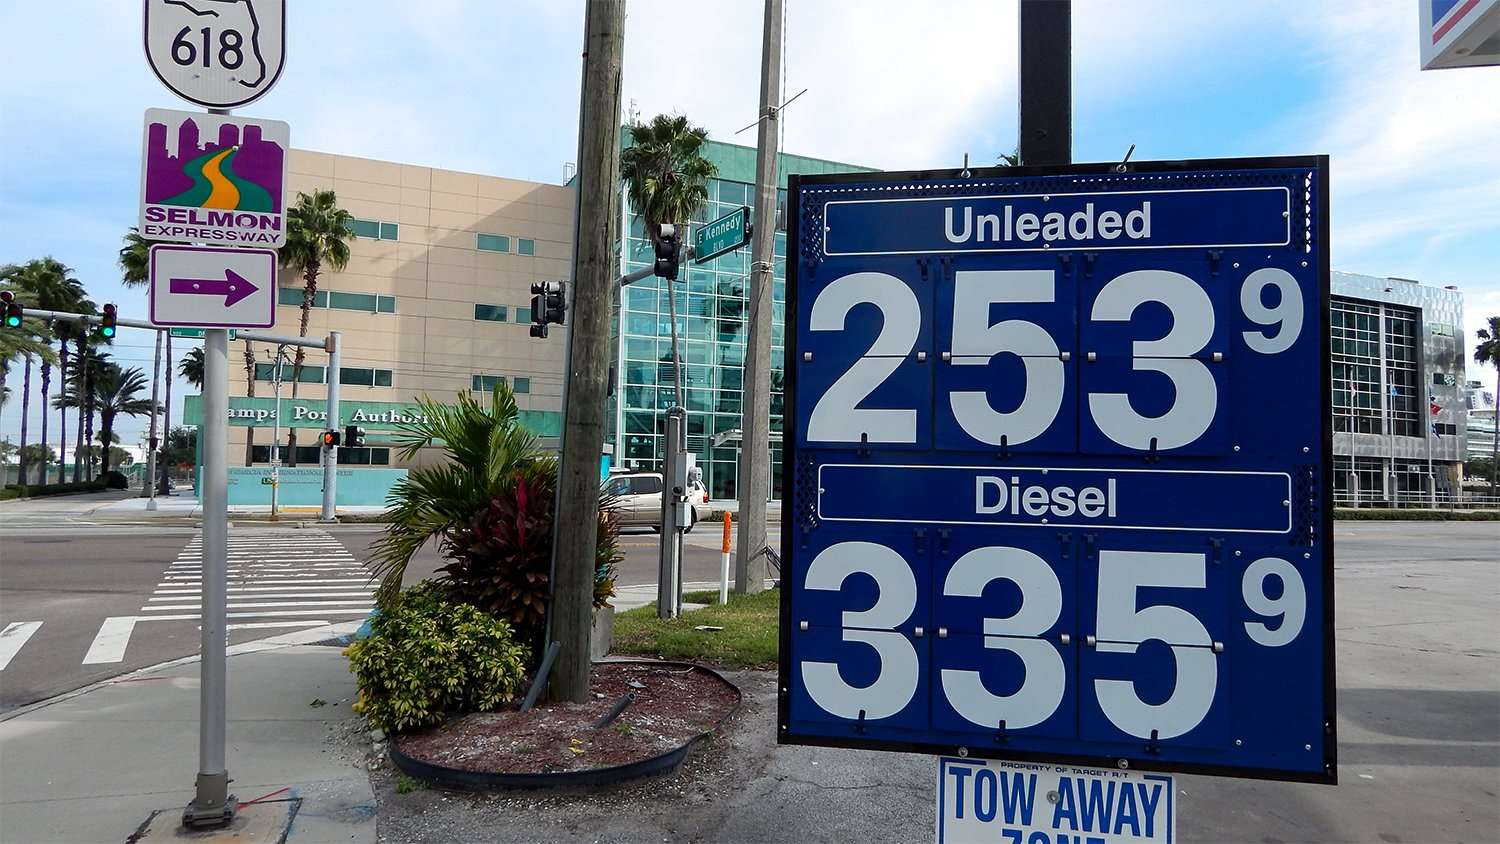 Dec. 11, 2014: Gas prices were $2.53 at Marathon Station on Kennedy Blvd and Channelside Dr in Tampa, FL/photonews247.com